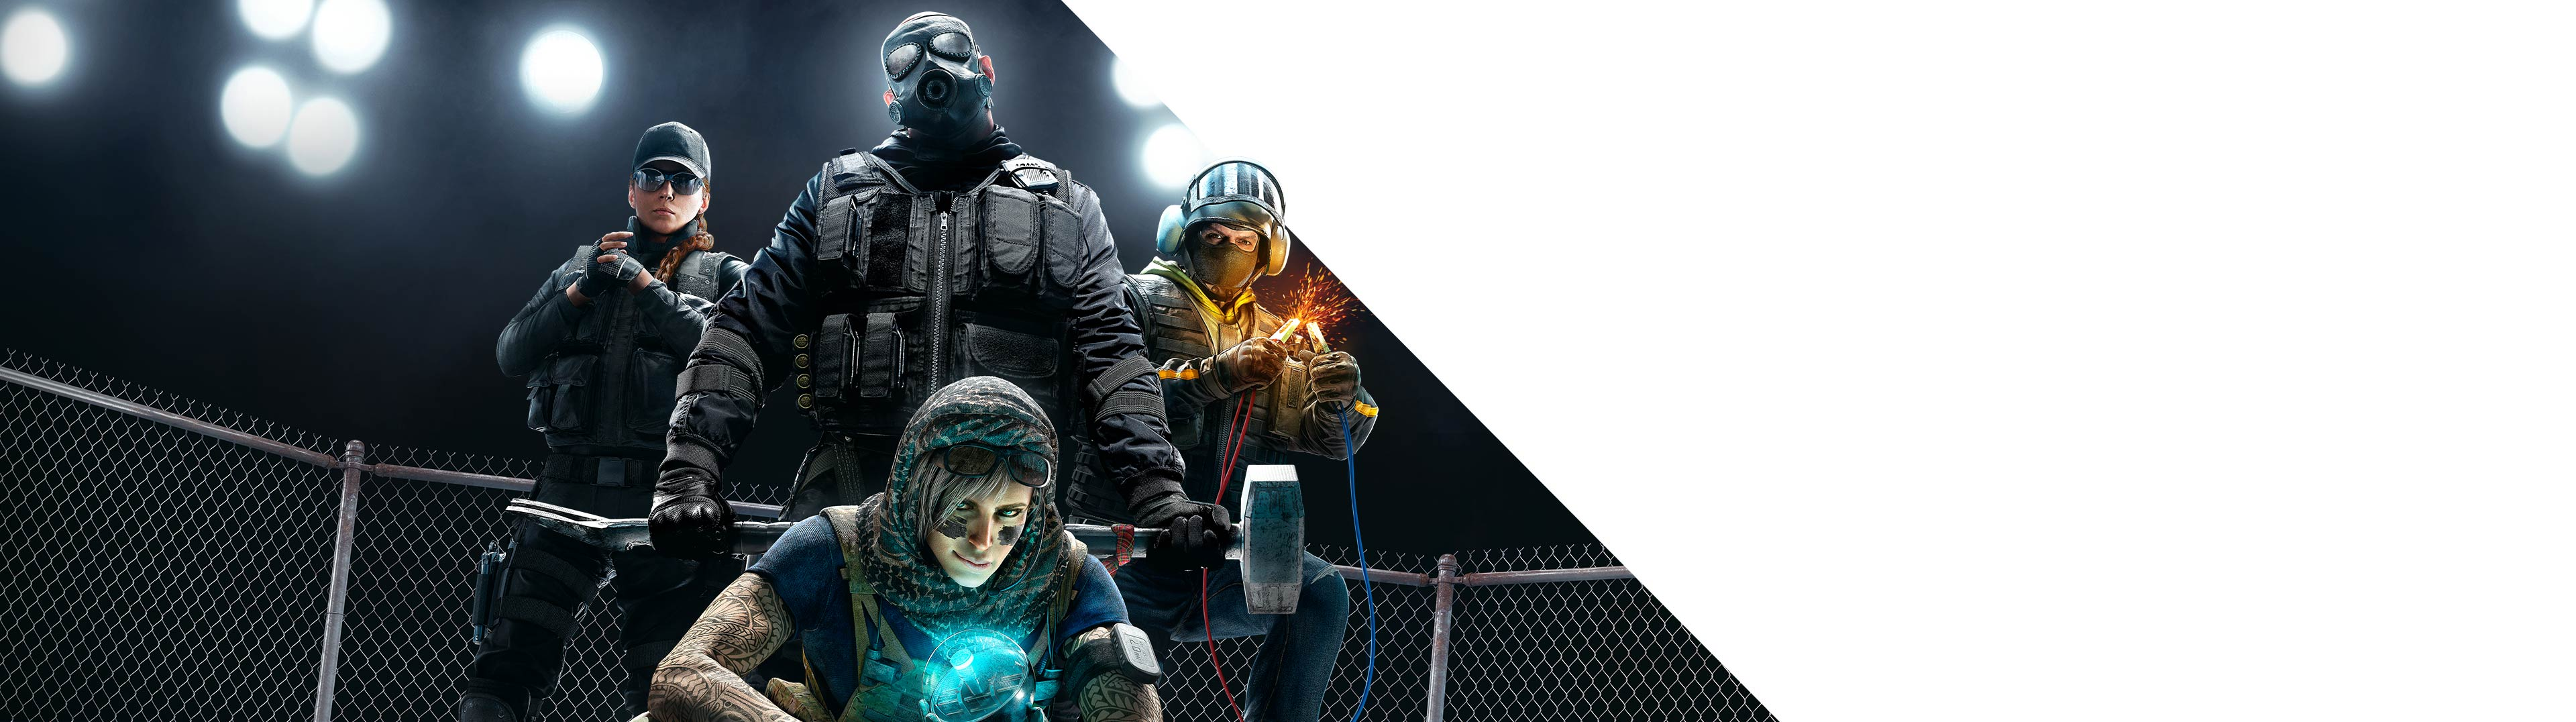 JOIN THE SIEGE AND BREACH THROUGH THESE DISCOUNTS